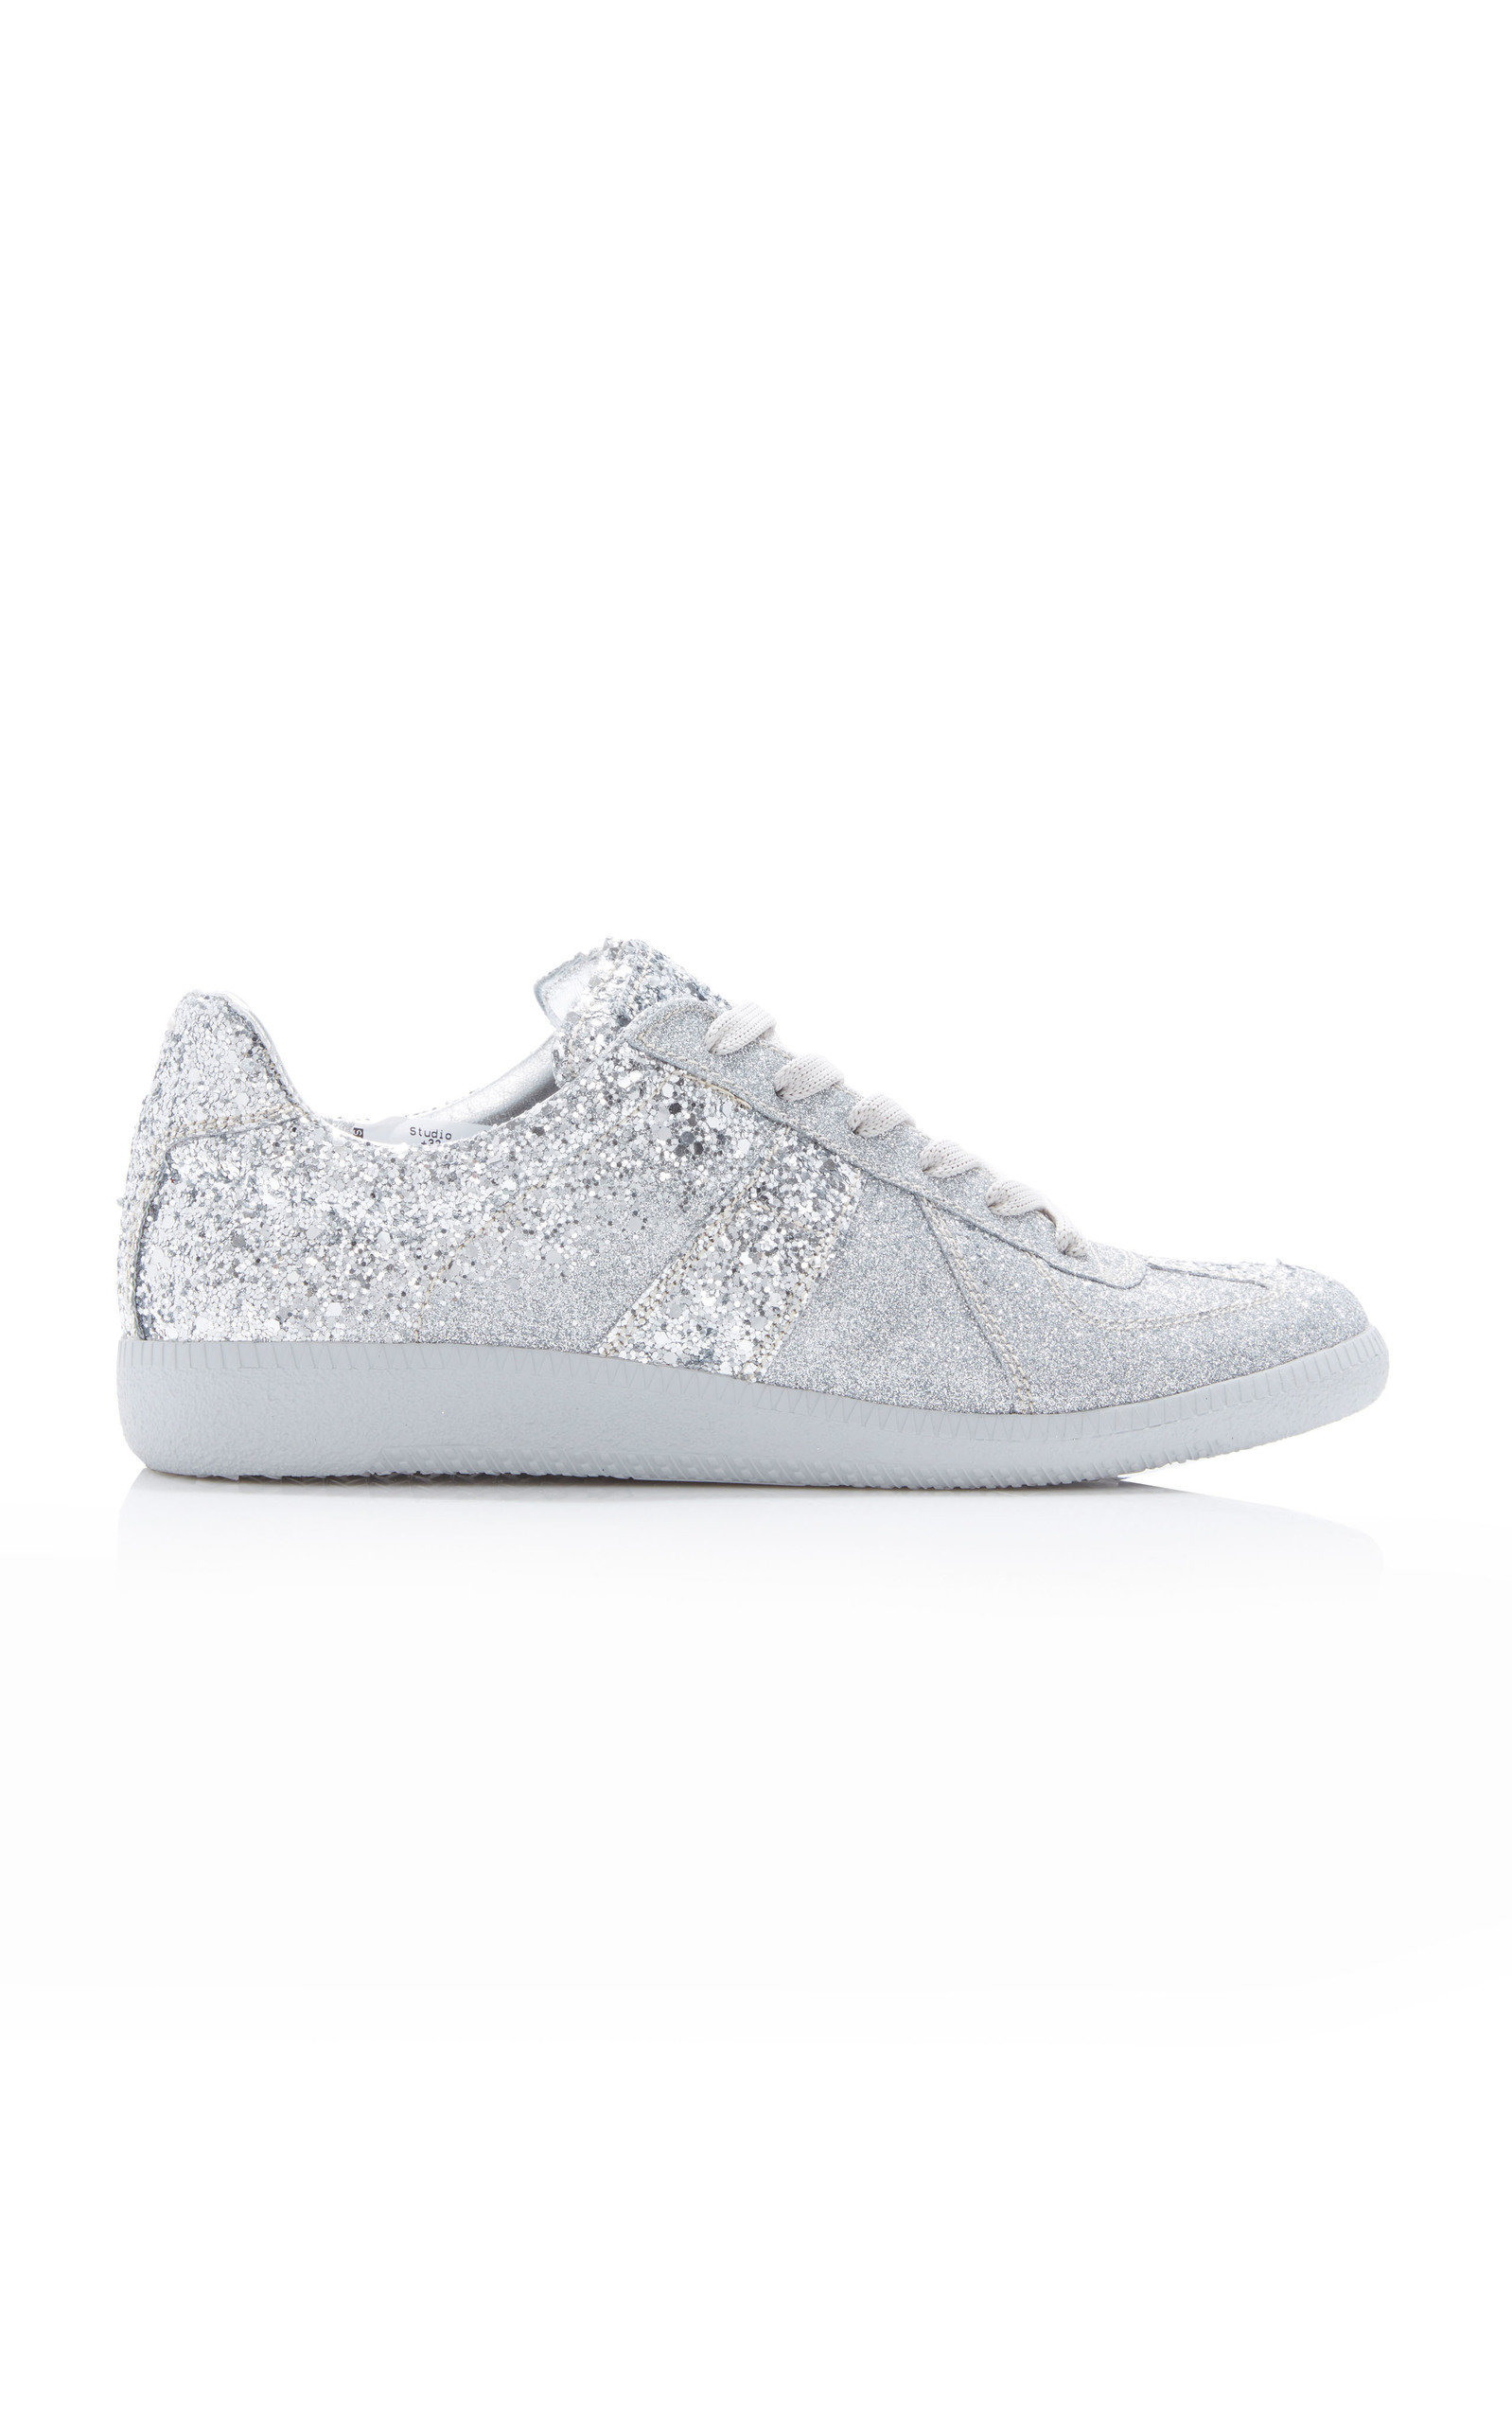 Maison Margiela Glitter-Embellished Canvas Low-Top Sneakers In Silver